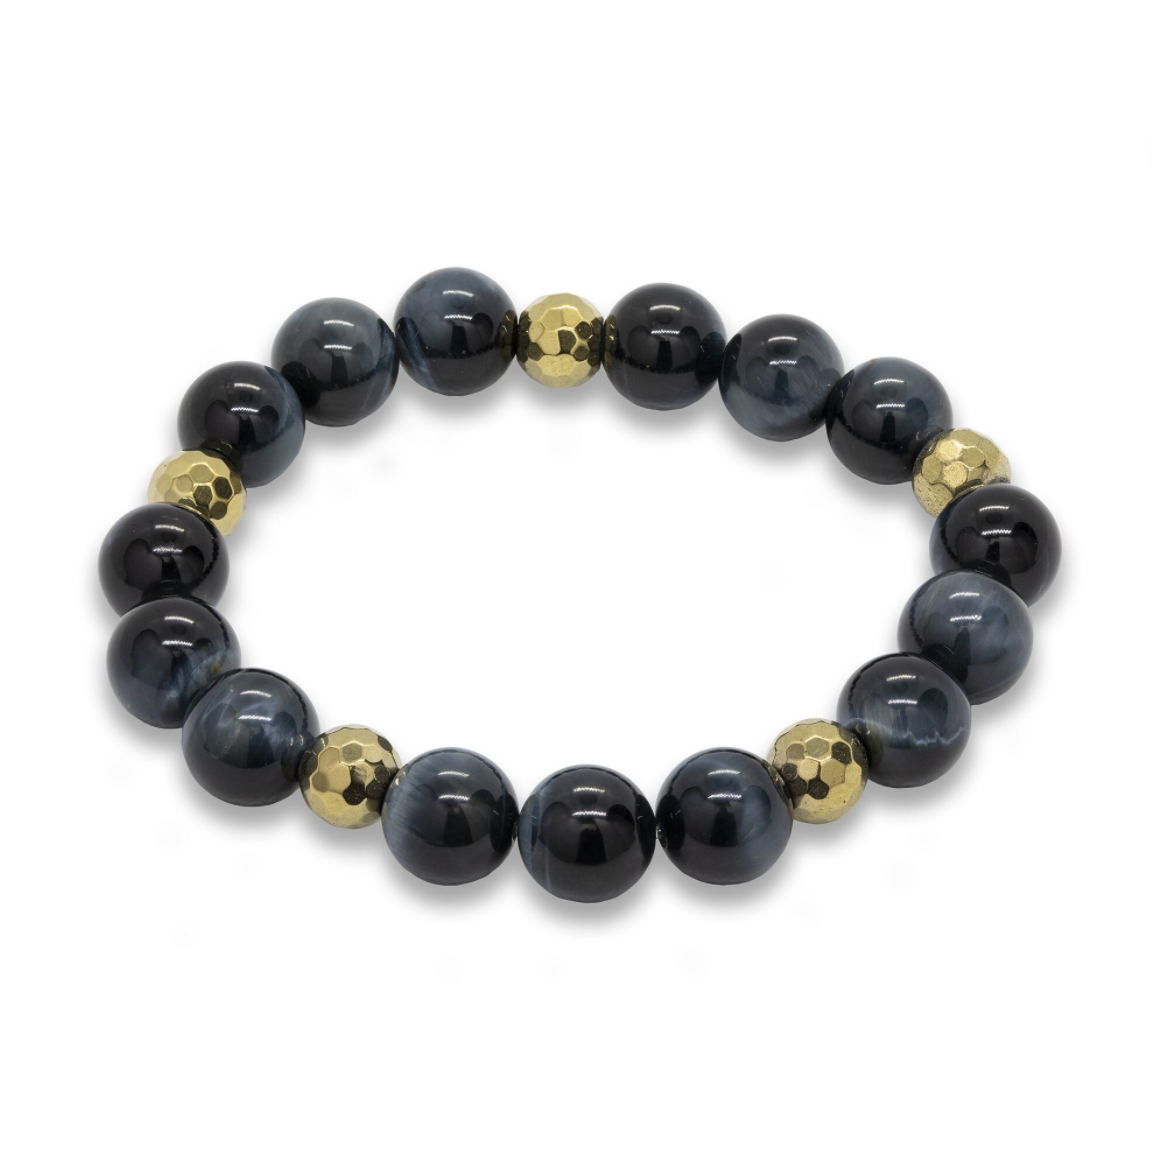 Unisex Kyanite Mala Stretch Bracelet